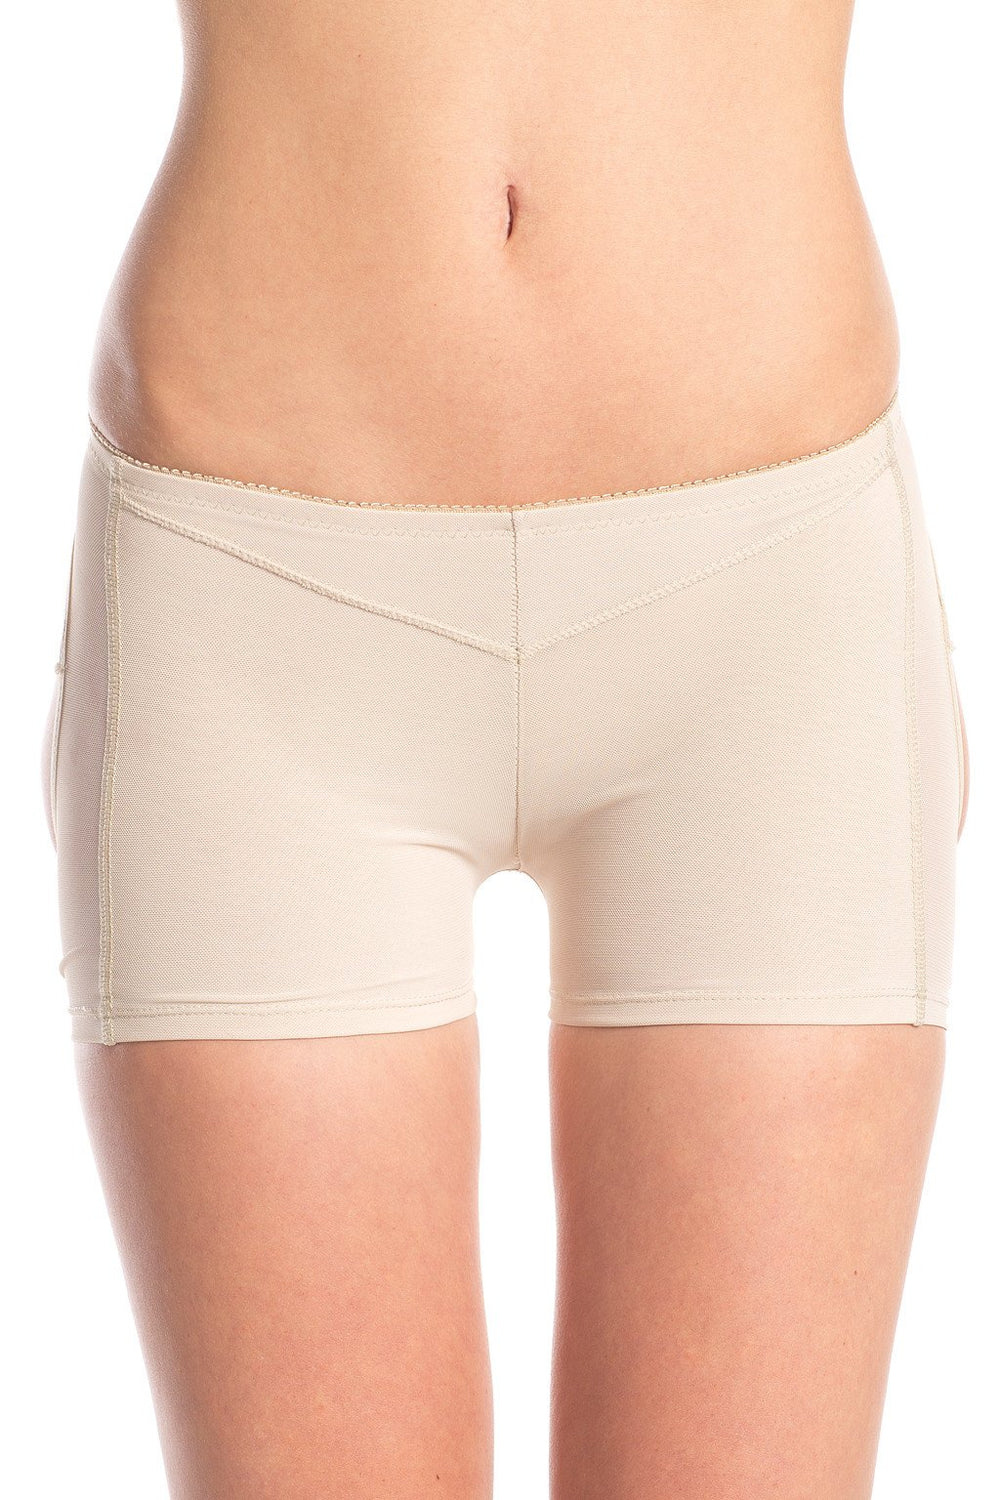 BW1649 Butt Booster Boyshort